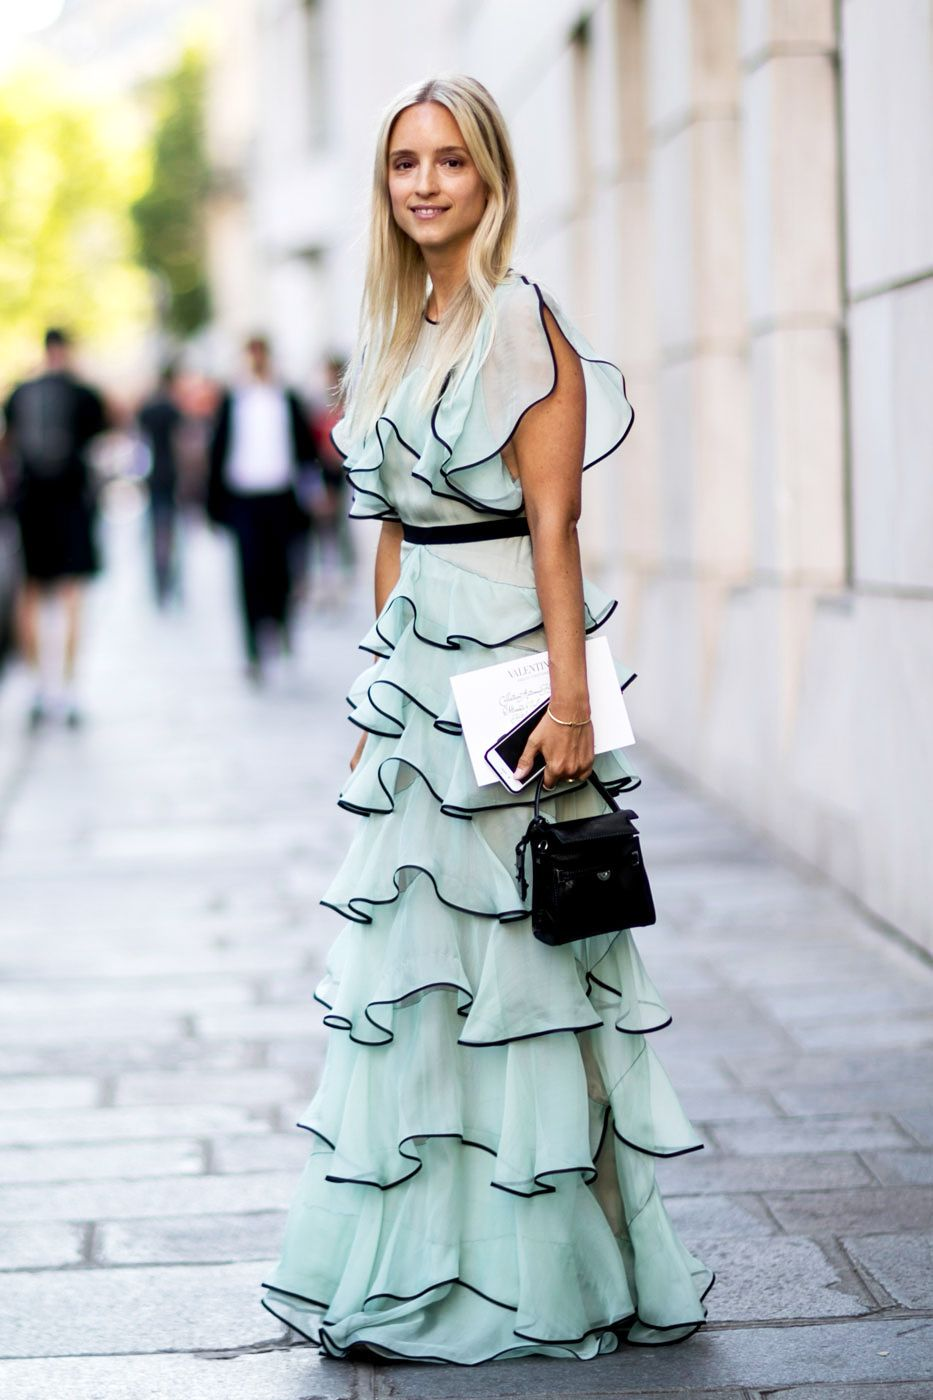 Wear You Would Mixed Greens?, How to black wear palazzo trousers